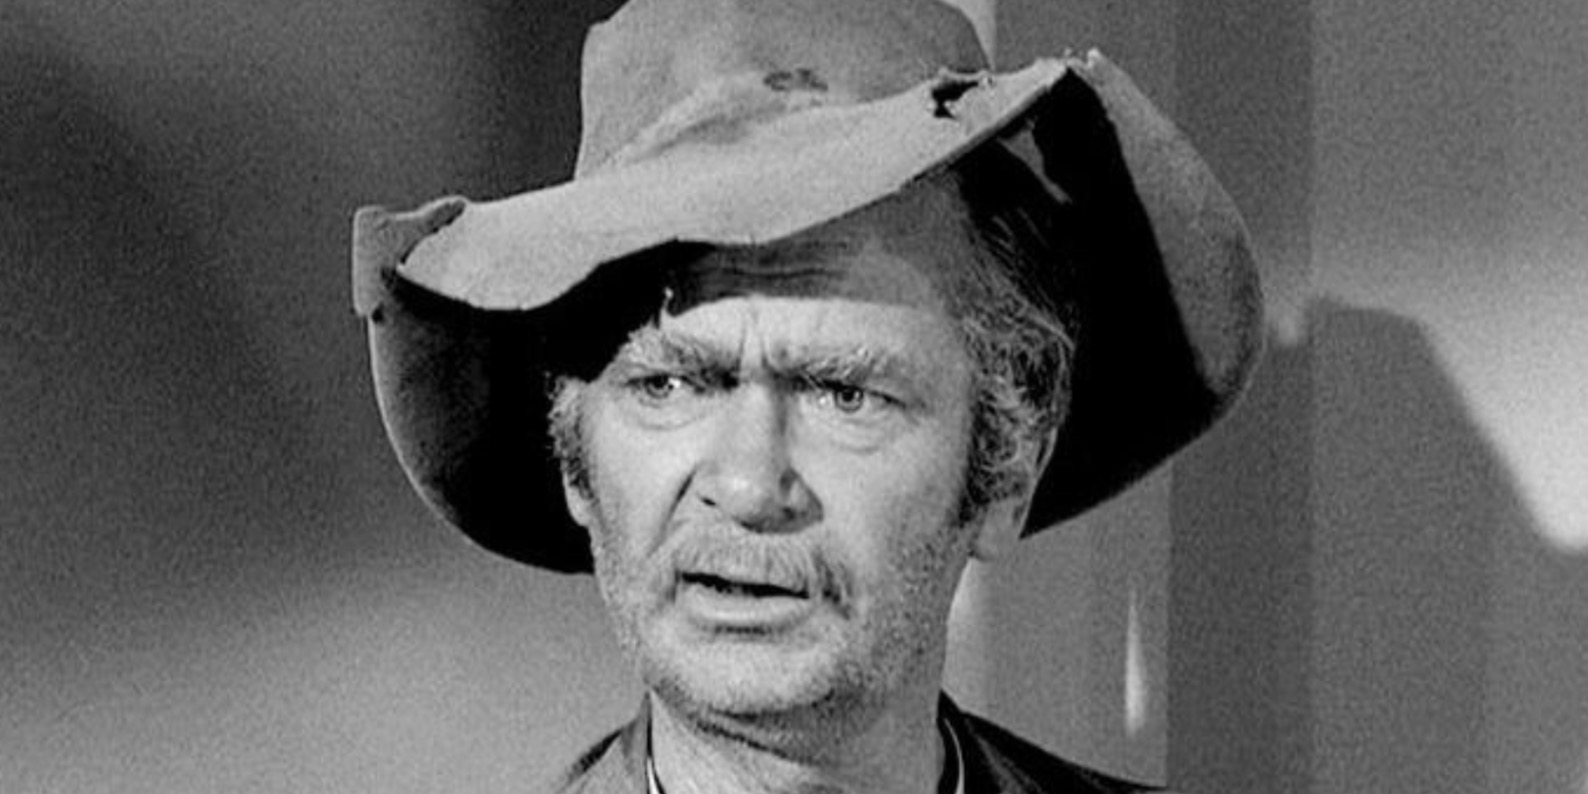 60s tv show main character, tv, The Beverly Hillbillies